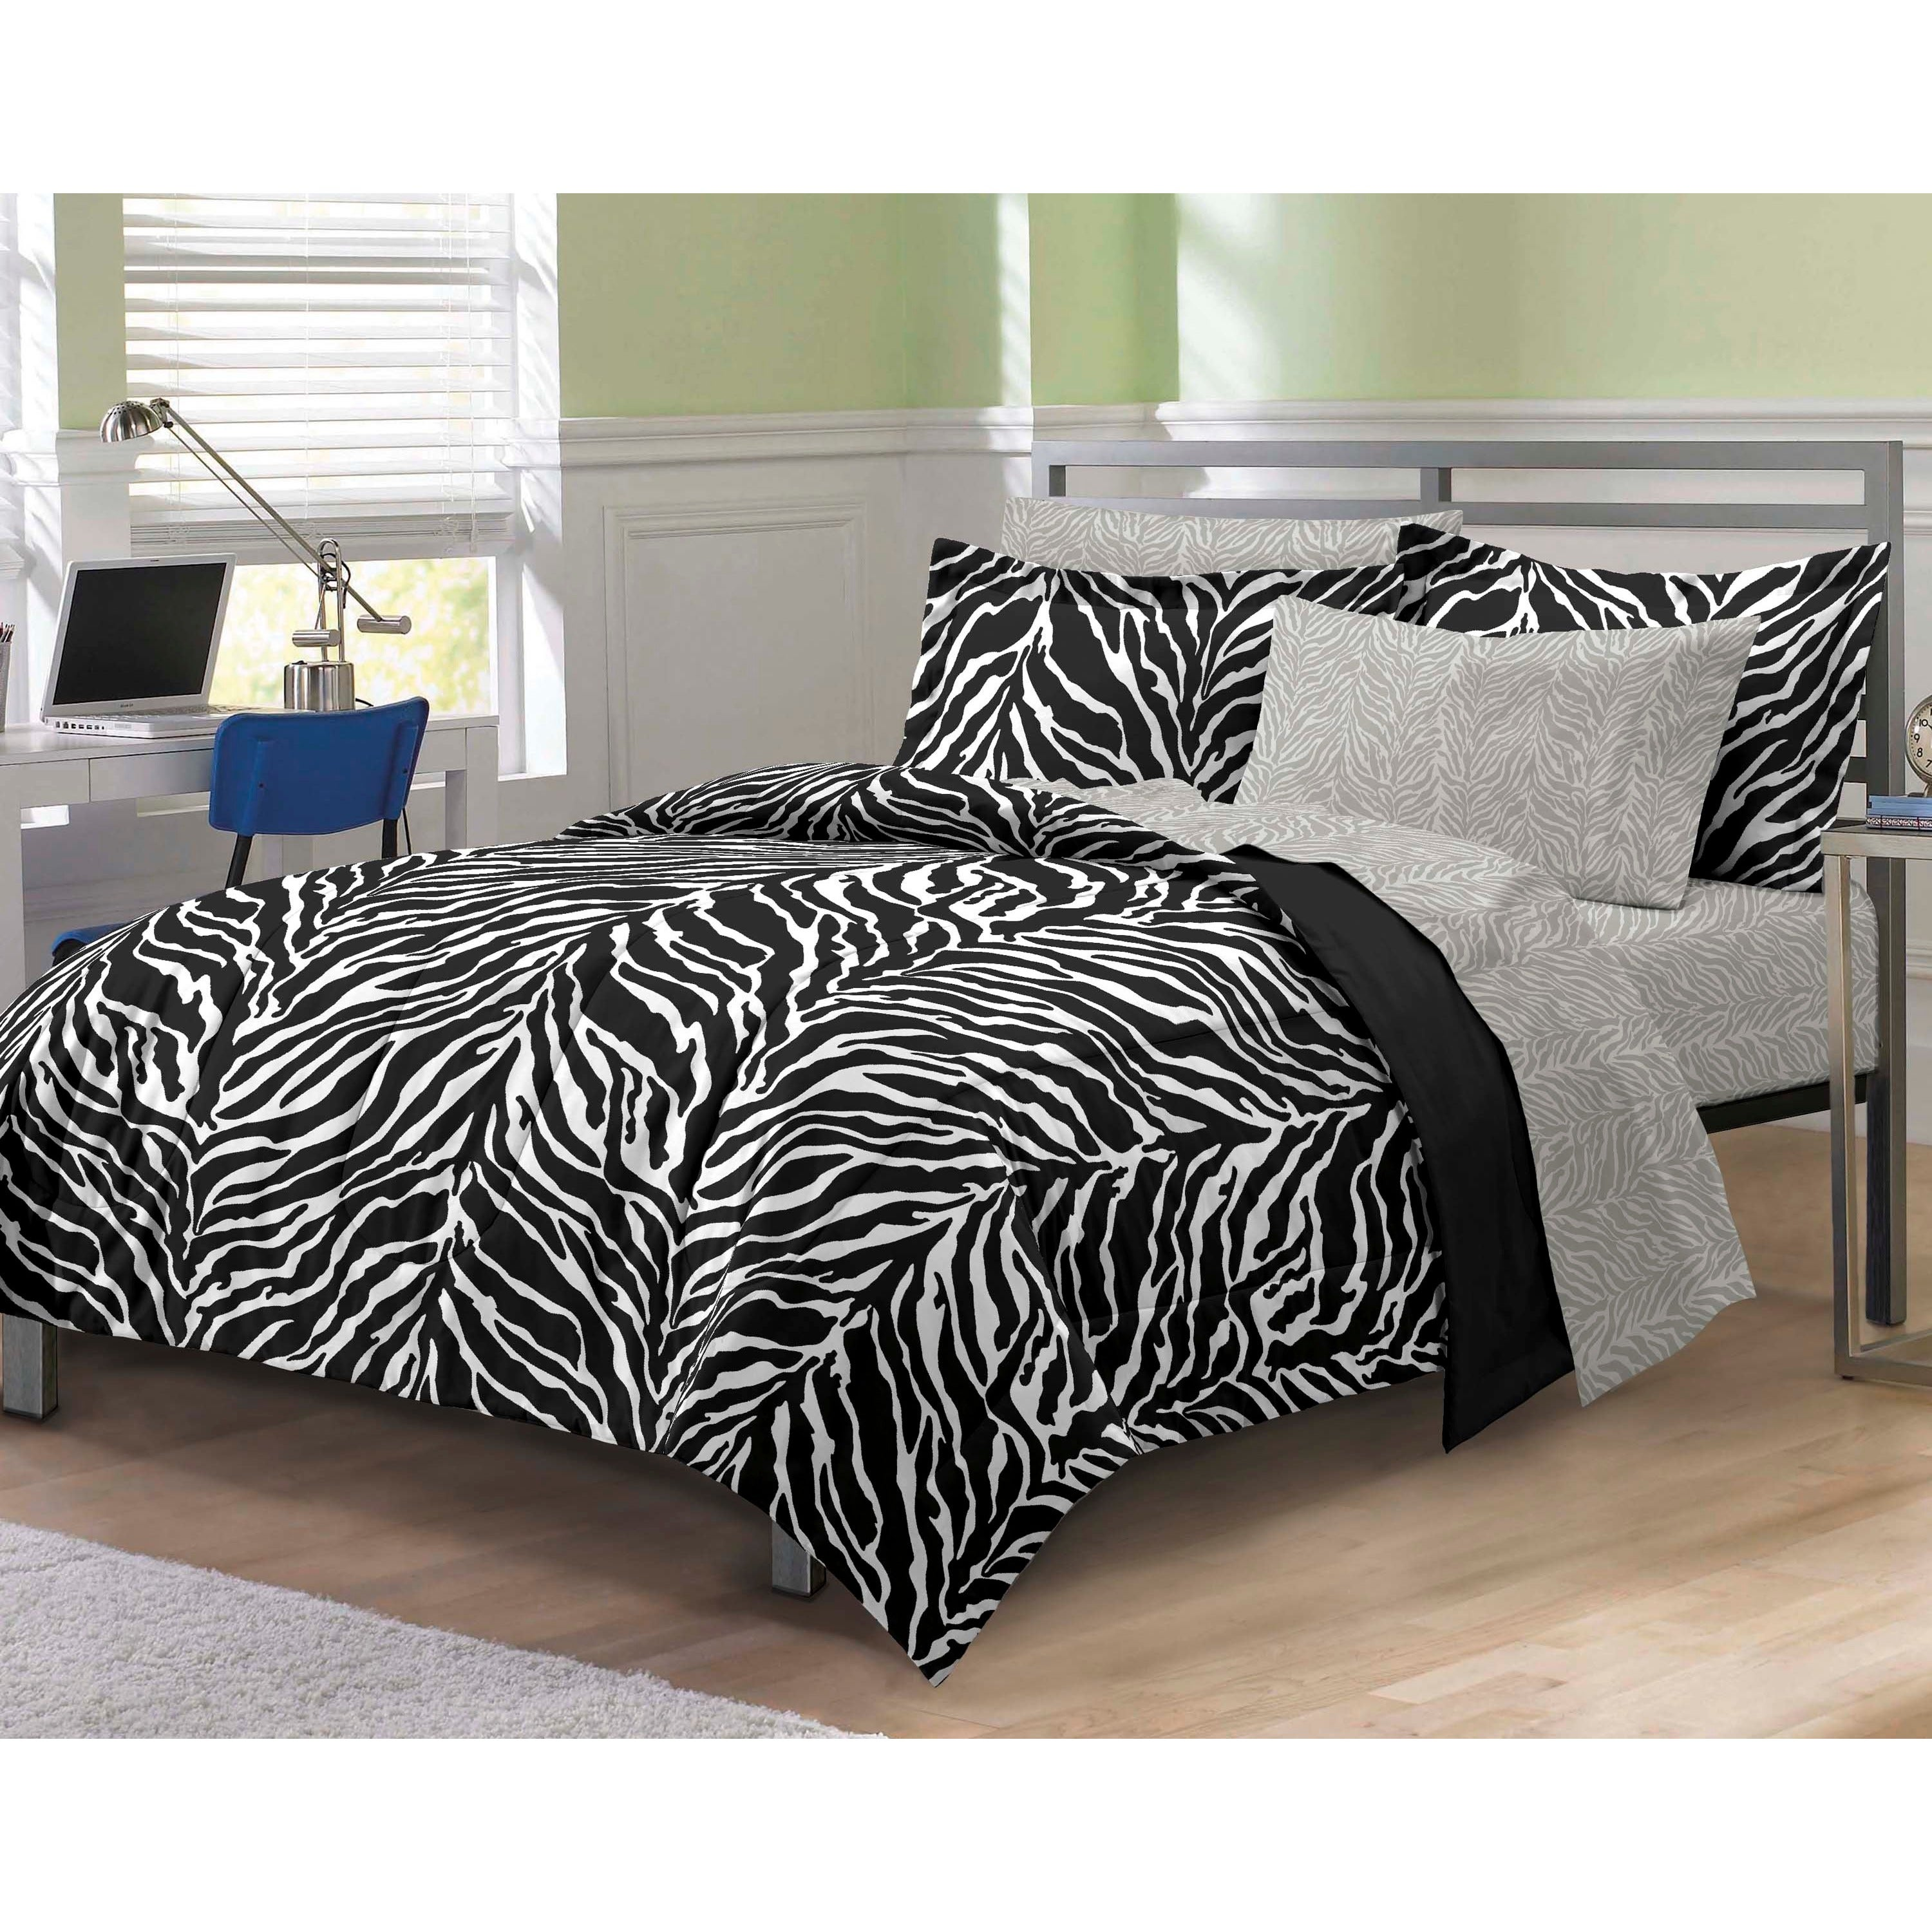 Home Interiors:Interior With Gray Bedroom Decoration Trendy Zebra Theme  1024x1024 Interior Zebra Theme Decorating